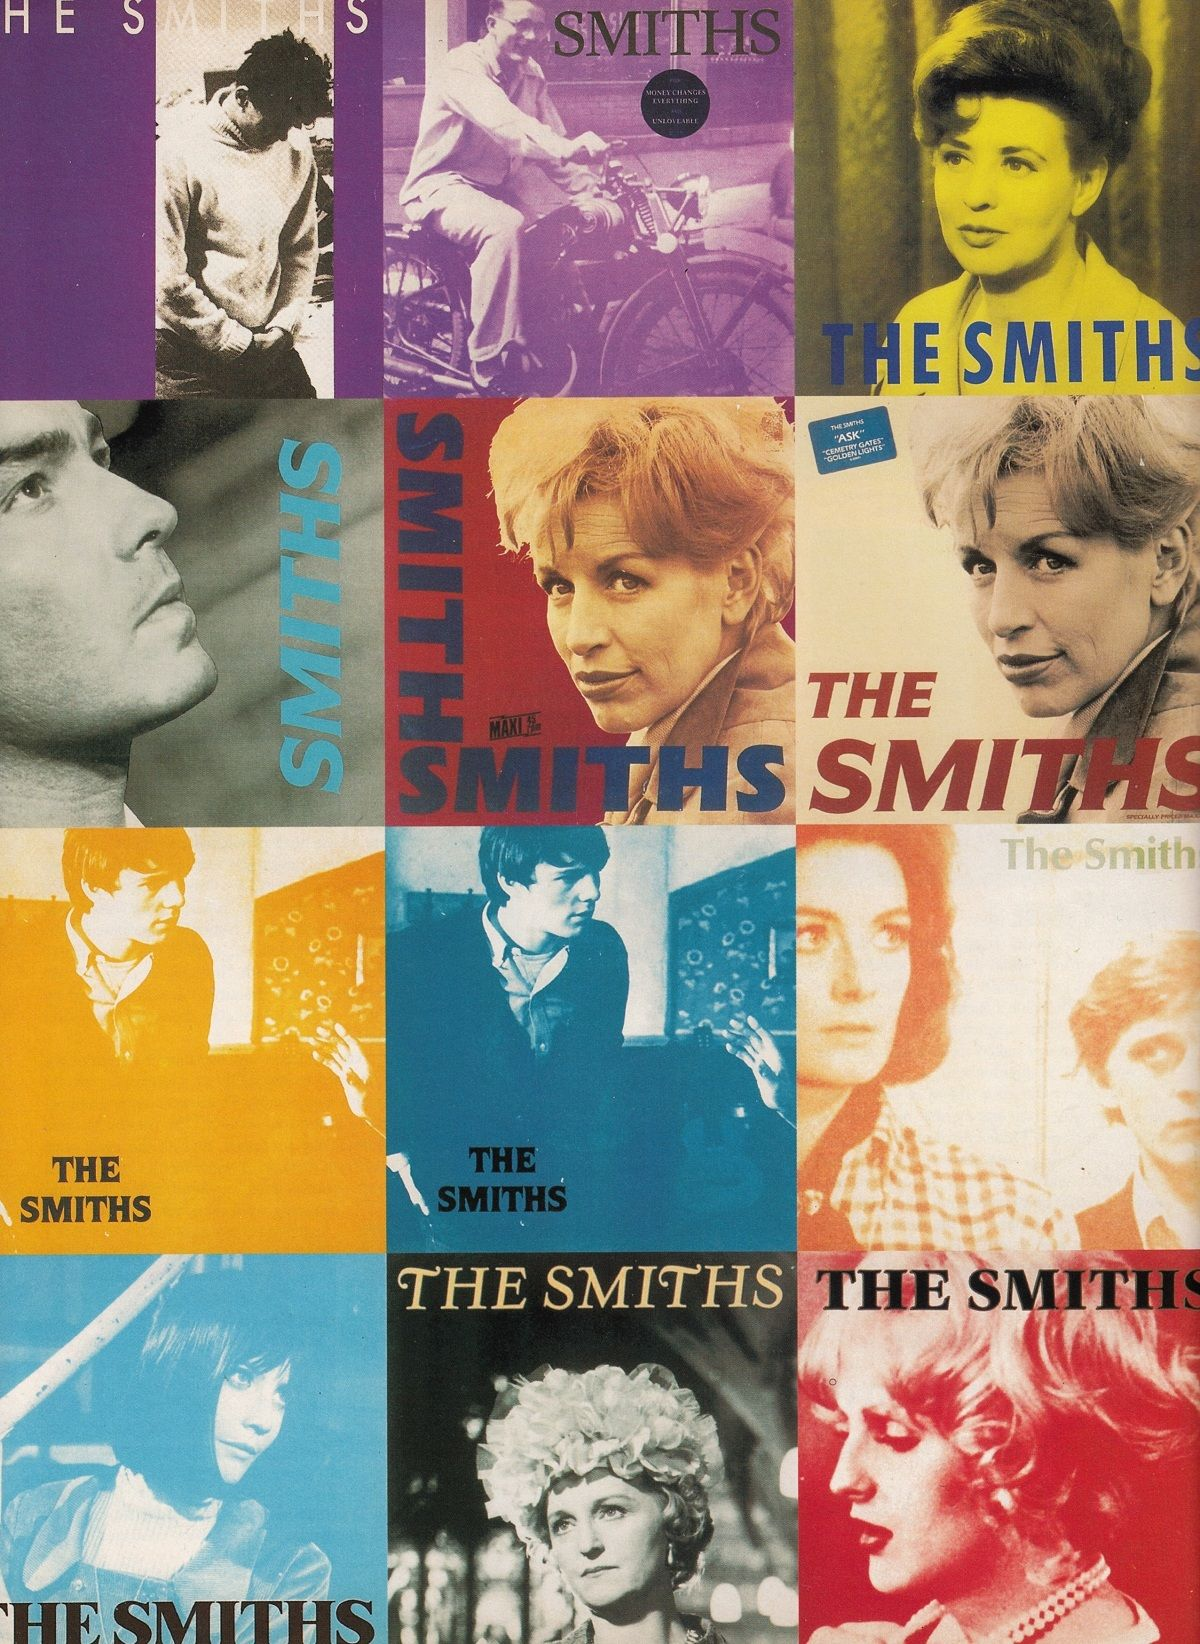 The Smiths cover artwork